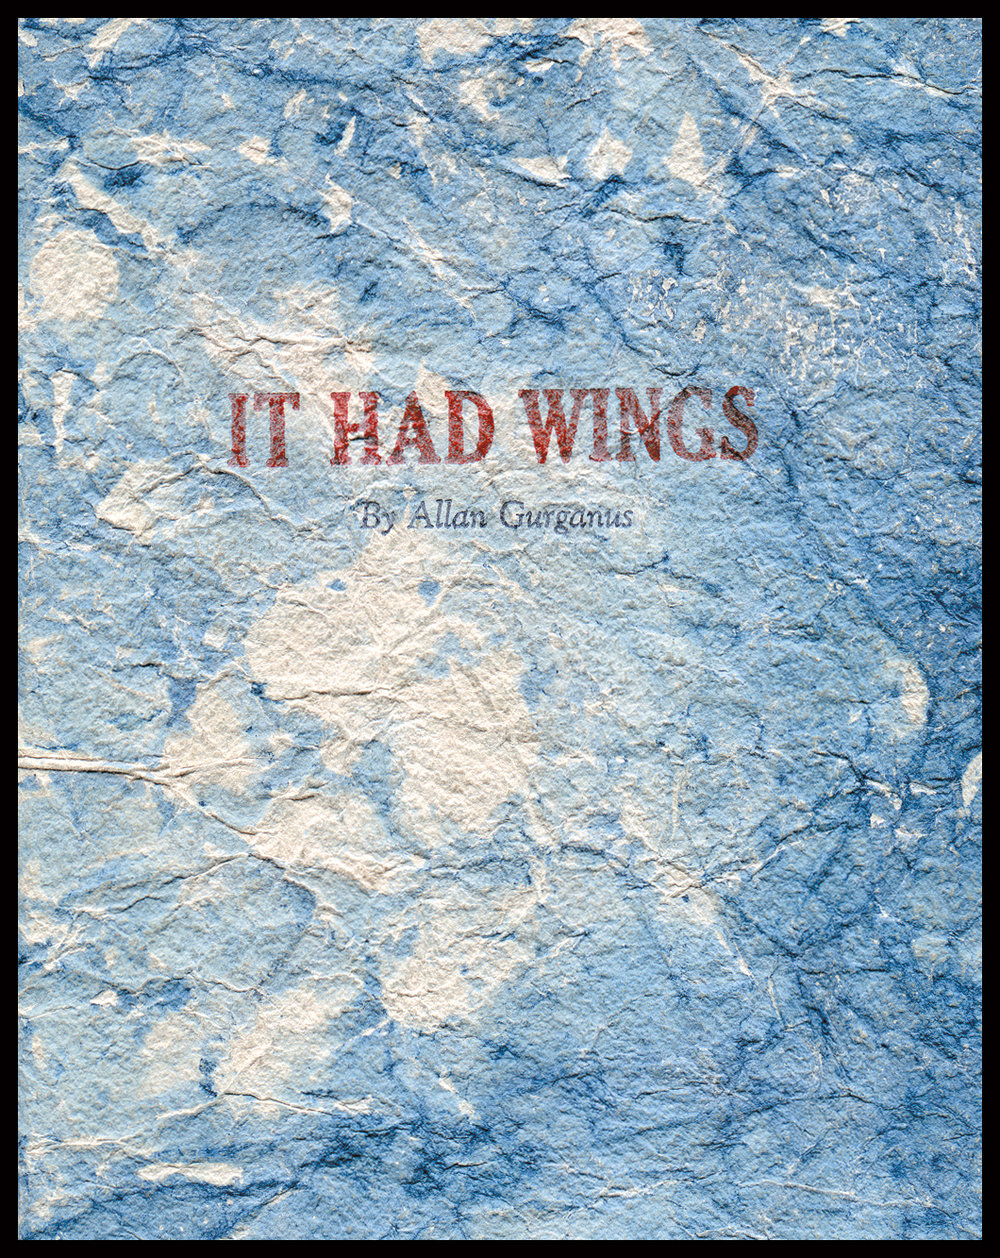 Cover made of handmade paper (abaca fiber) which was then dyed in an indigo vat. To create the look of a sunny Tuesday afternoon sky (which the story takes place during), and the feel of an angel's wings (which is a central element to the short story).